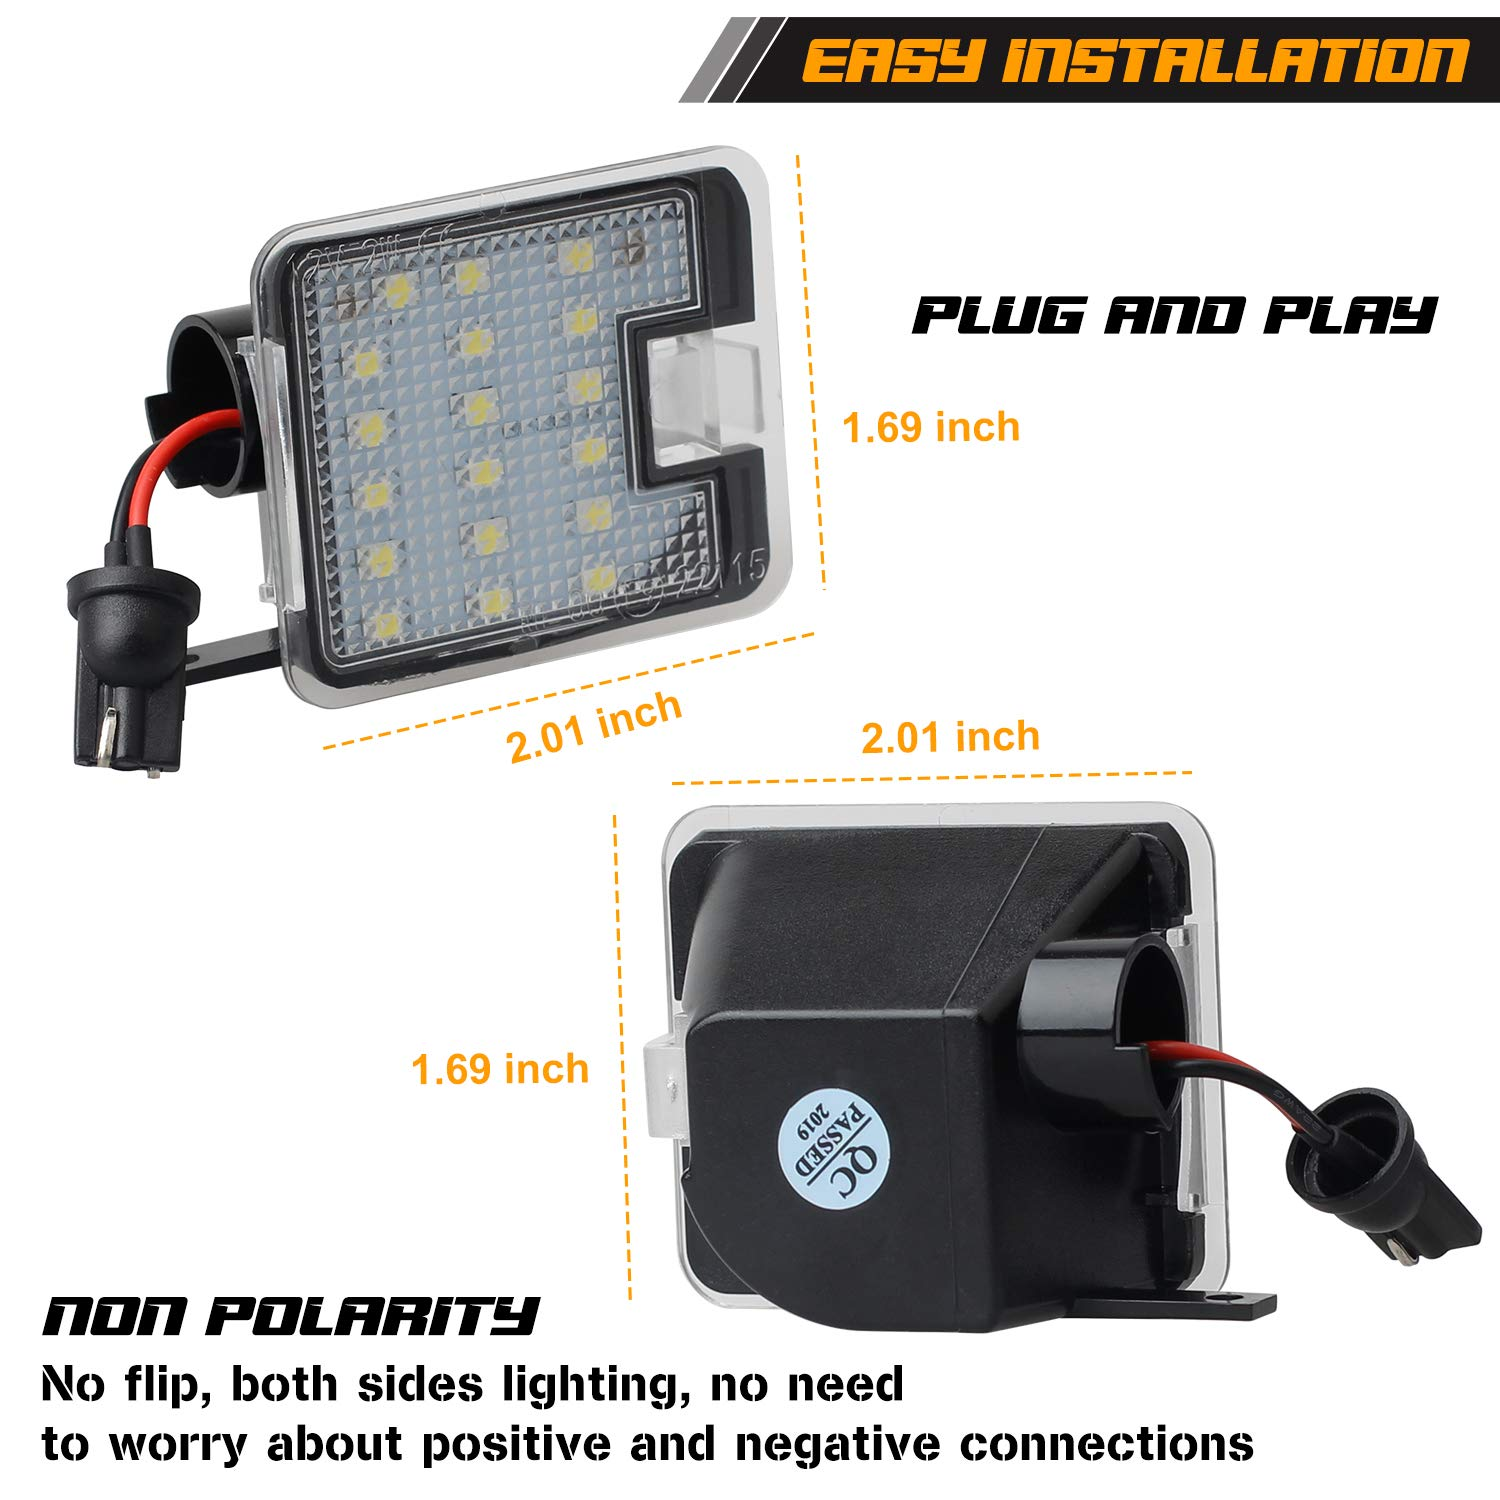 Pack of 2 RUXIFEY LED Side Mirror Puddle Lights Compatible with Ford Focus Mondeo IV C-max Kuga Escape S-Max White